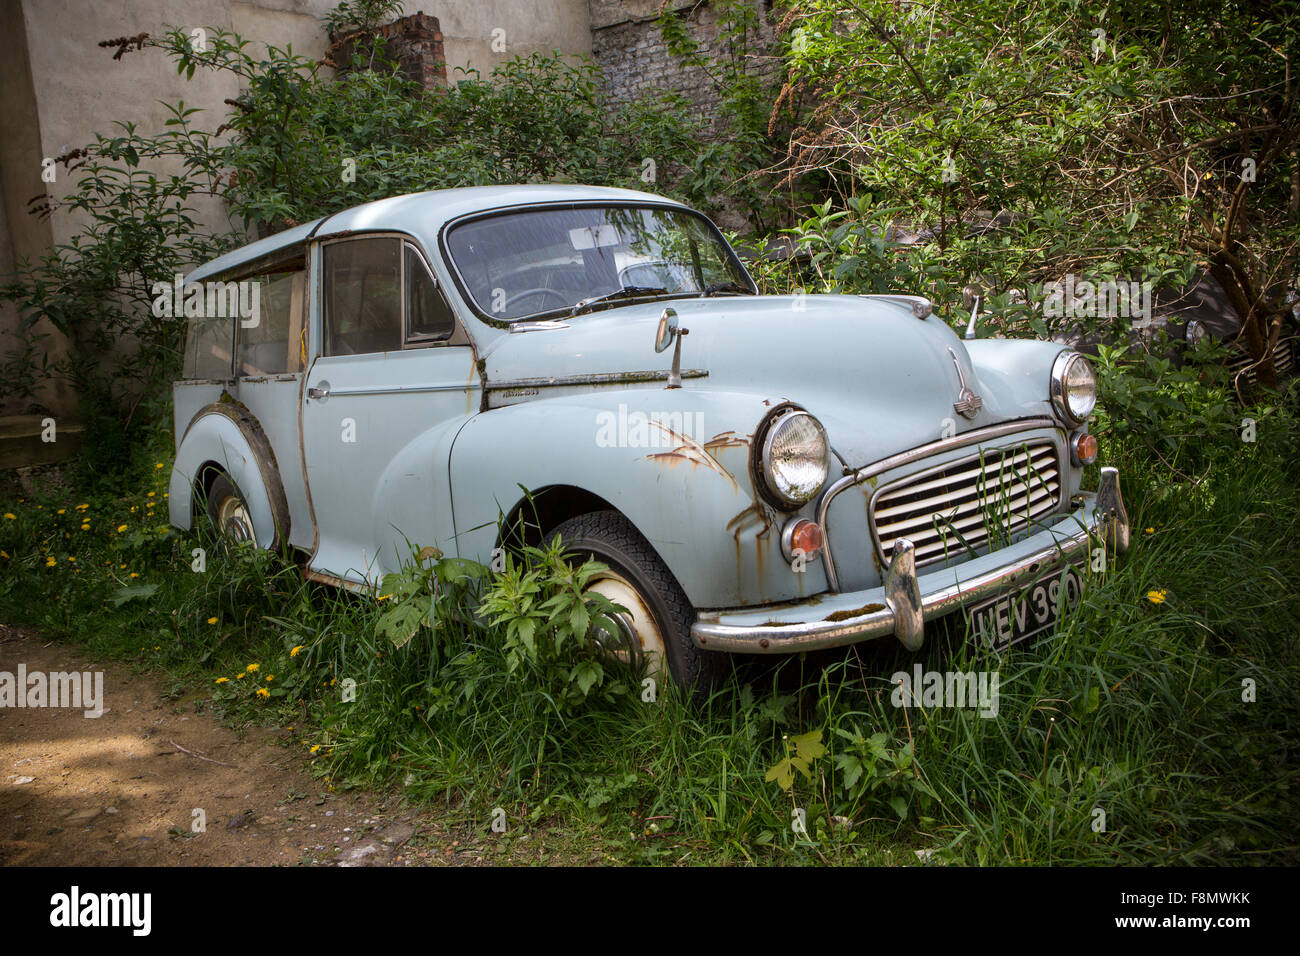 A derelict Morris Minor Traveller. - Stock Image